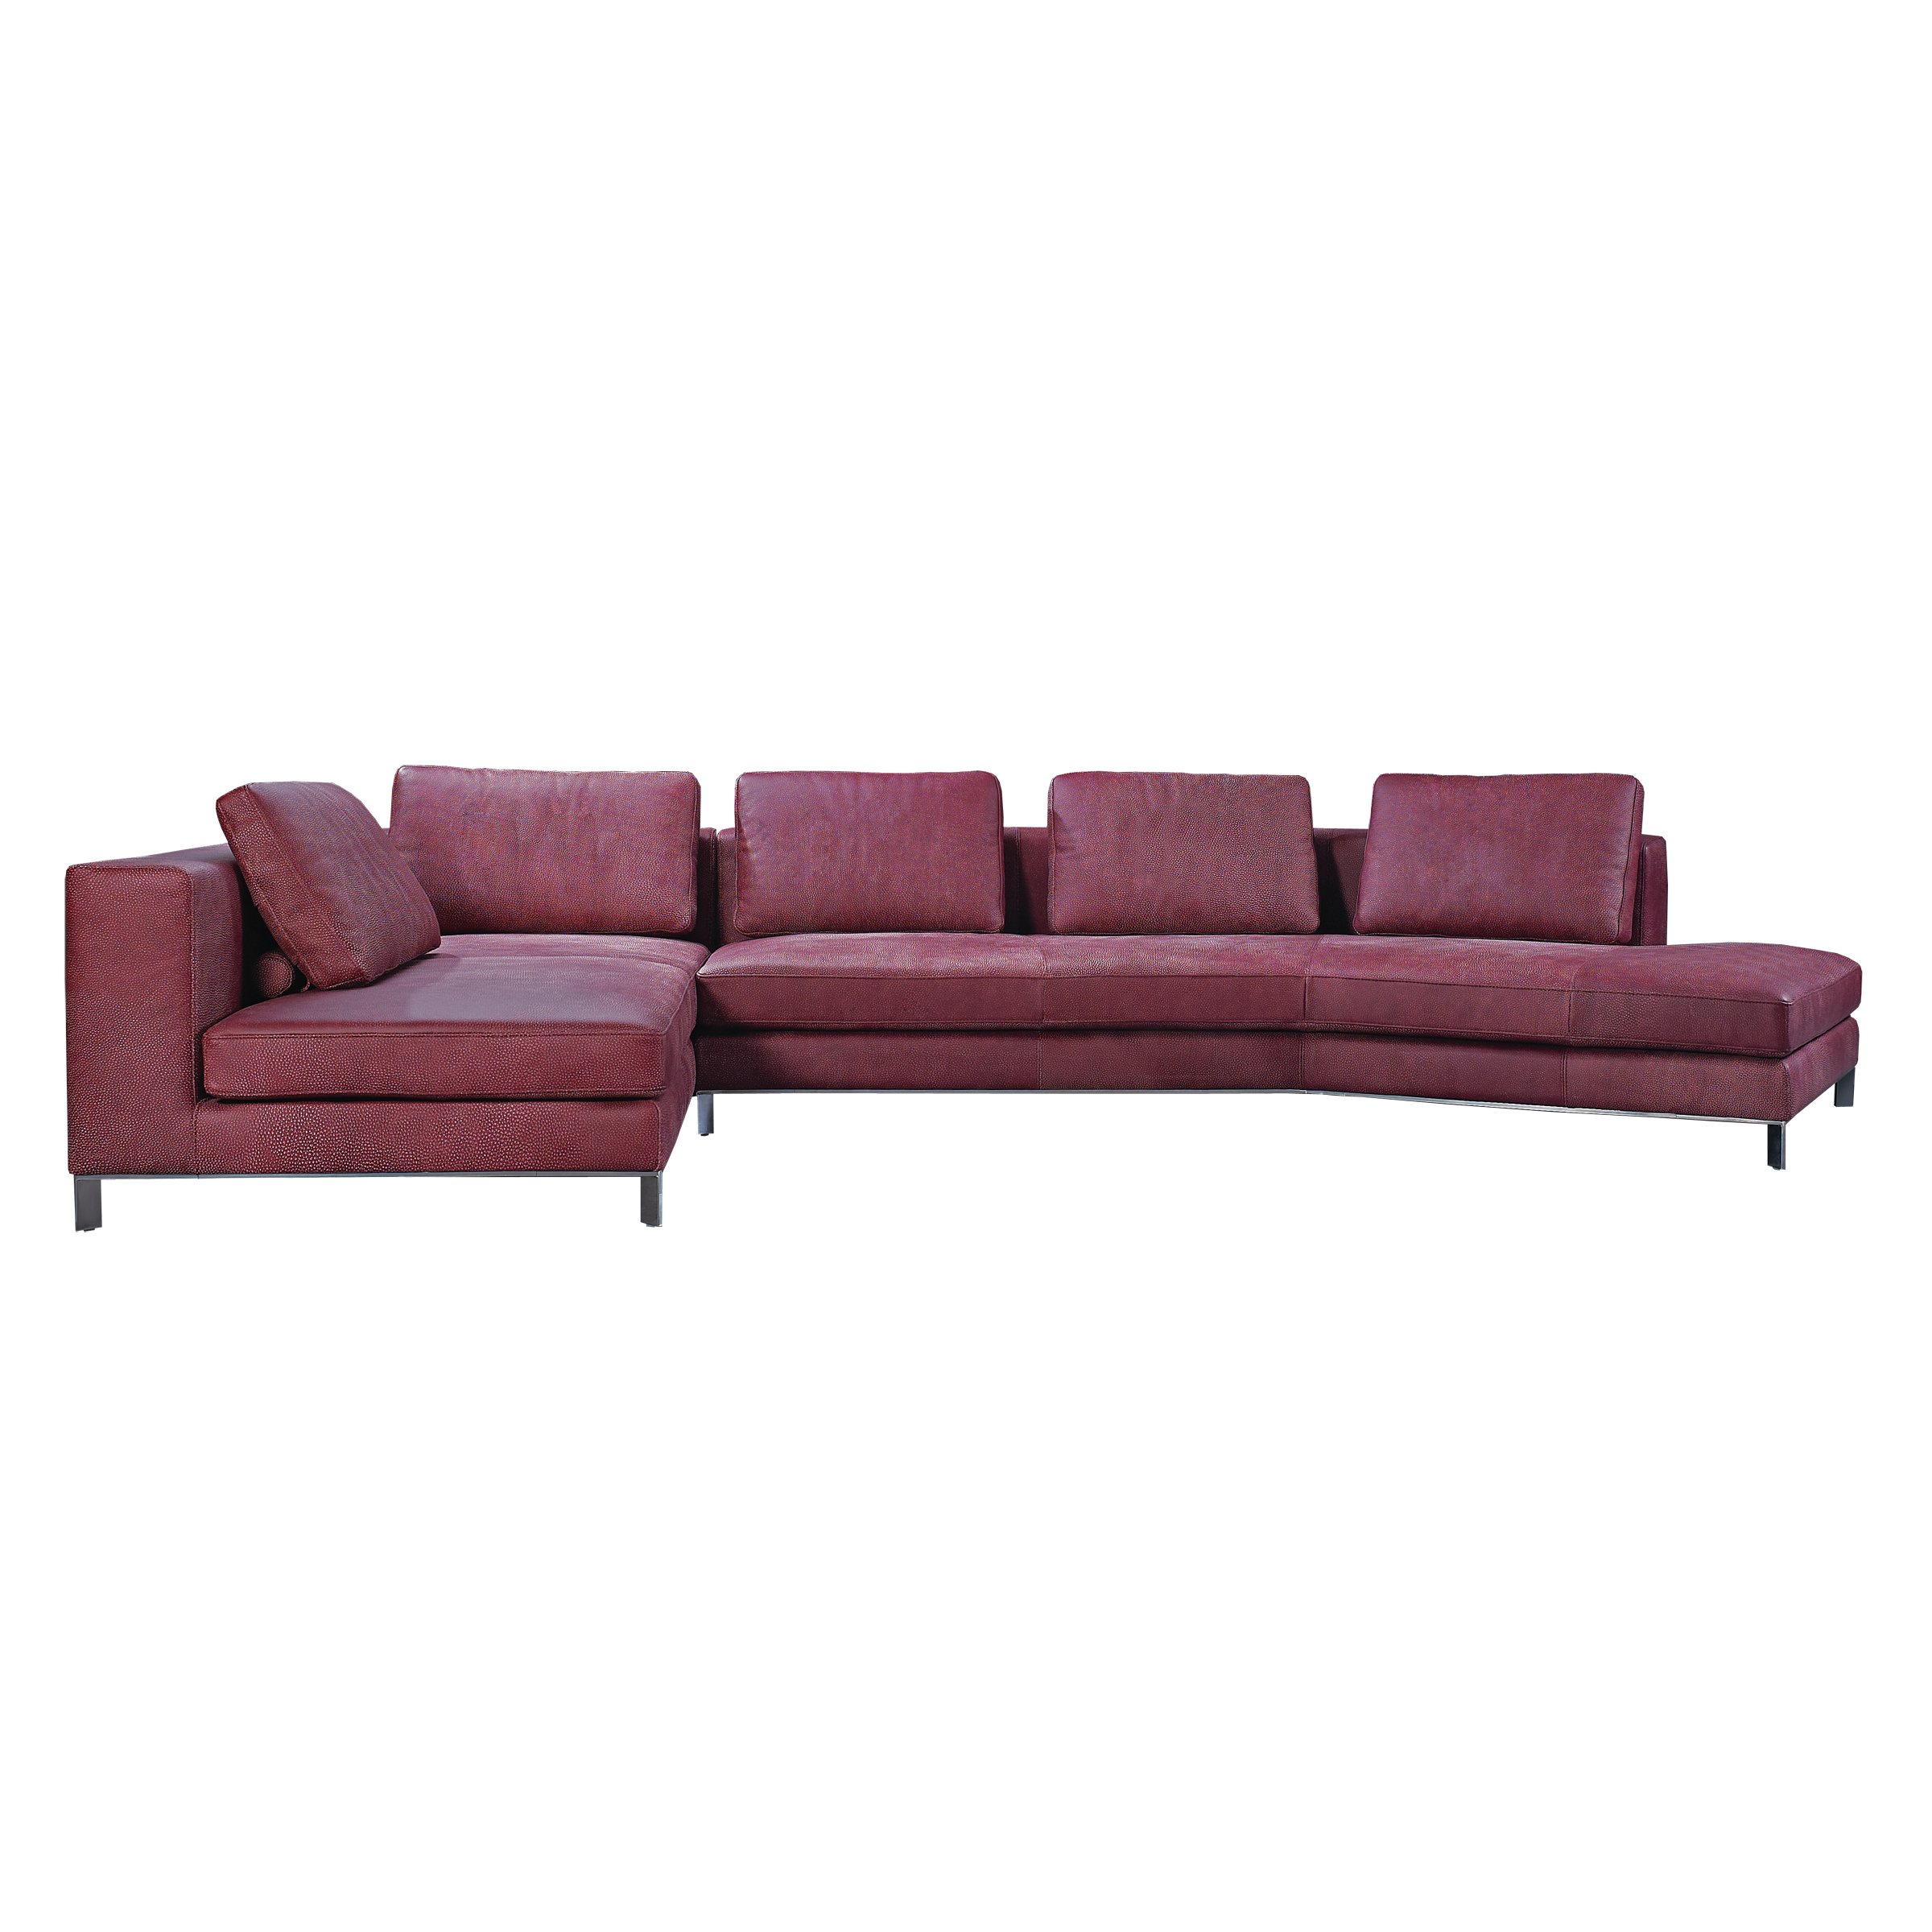 Liberta Angled Corner Sofa Beyond Furniture